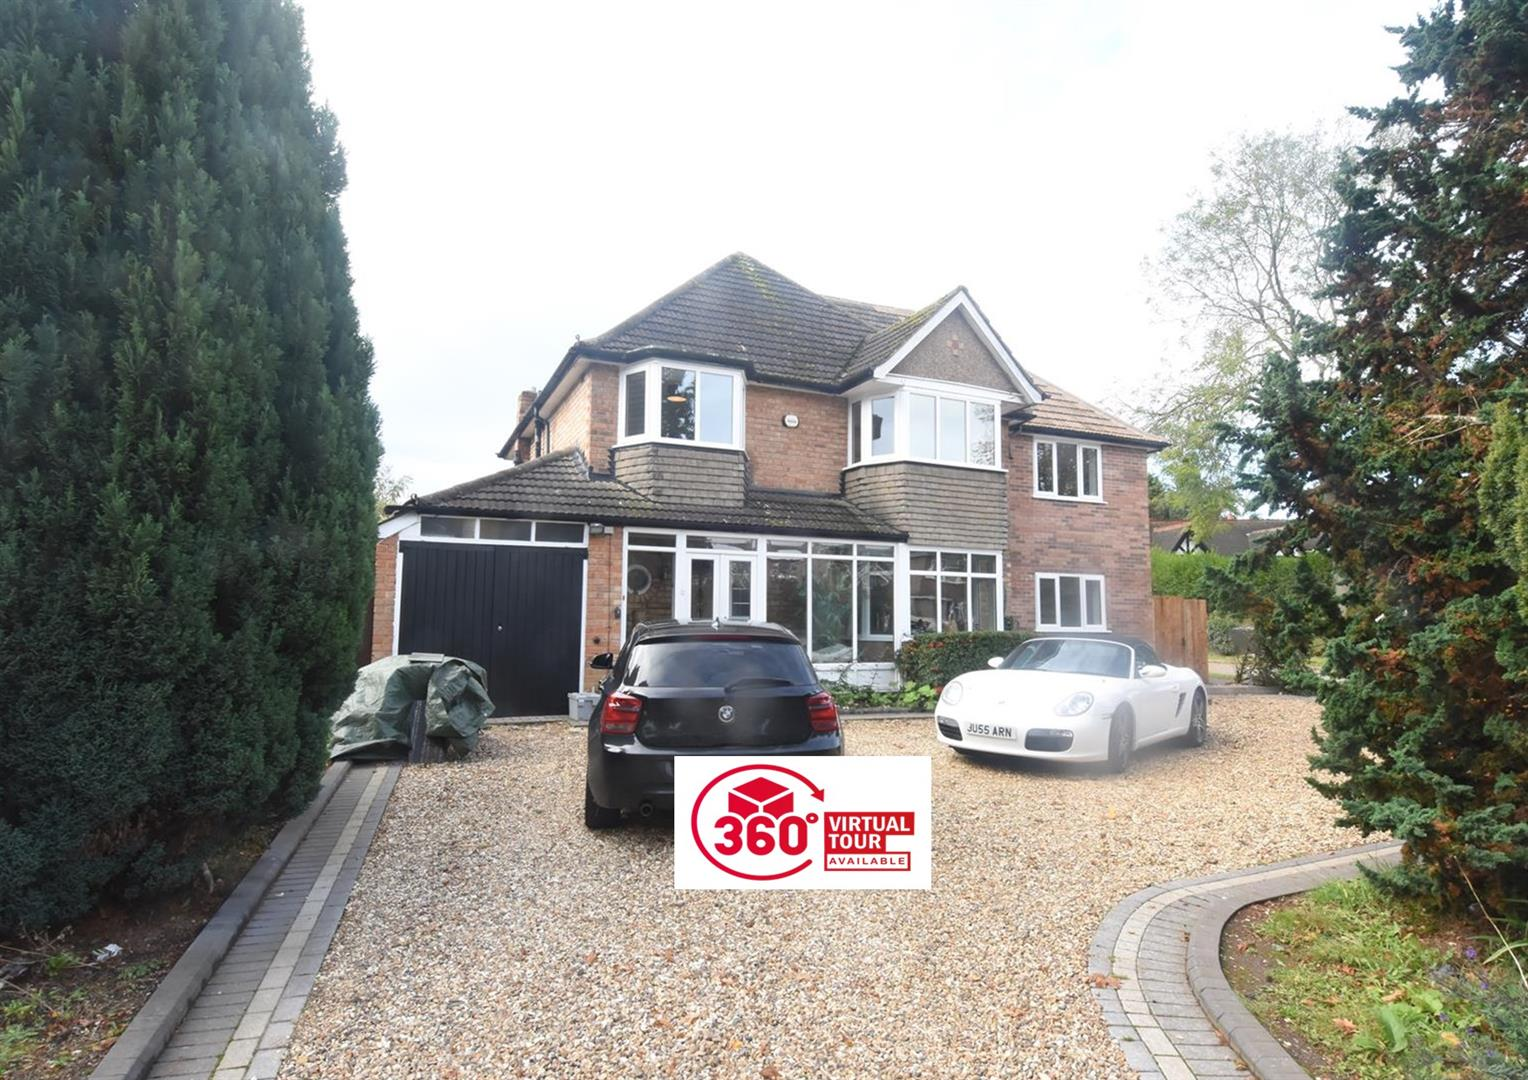 5 bed house for sale in Chester Road, Castle Bromwich, Birmingham, B36